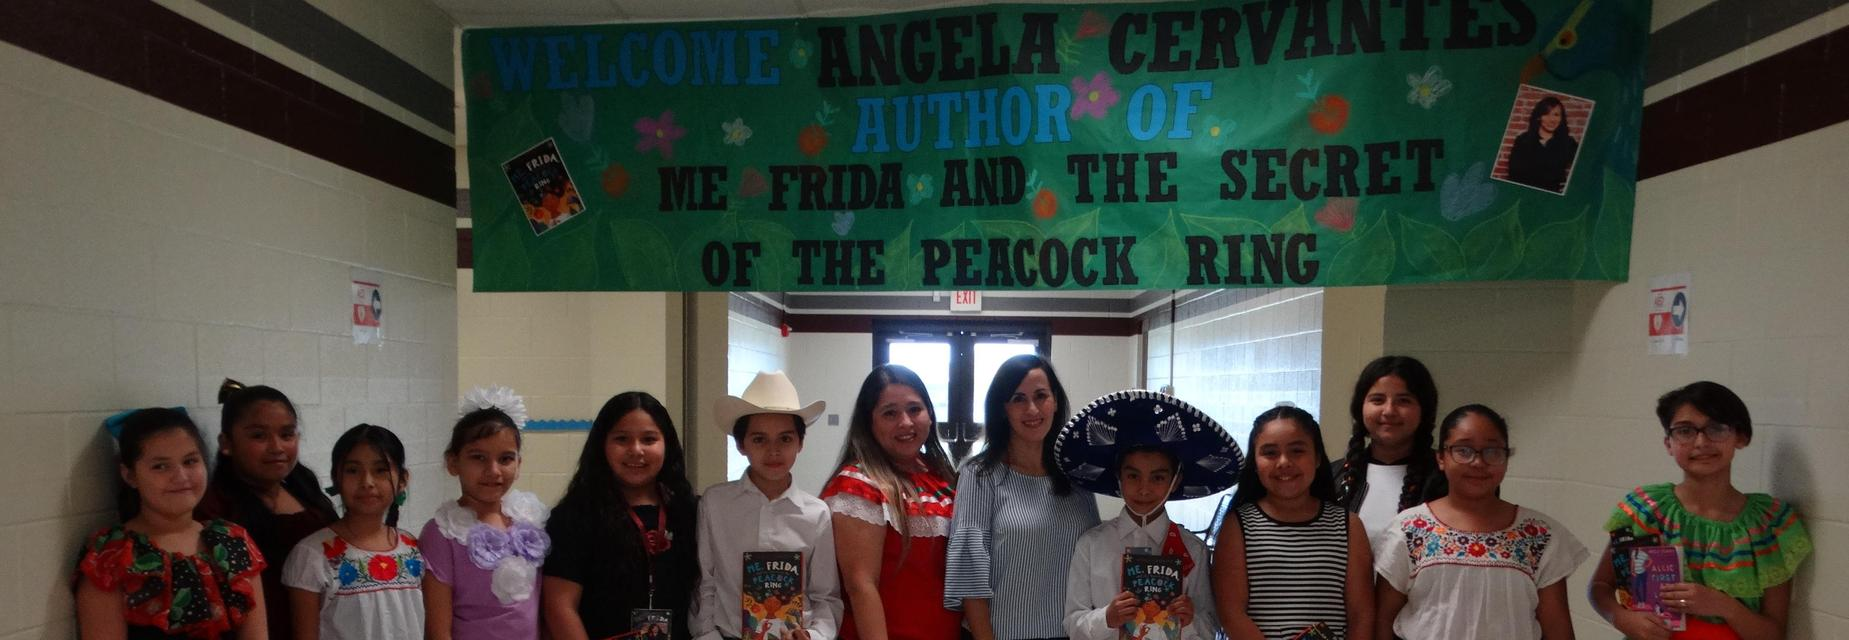 Reading Rock Stars Author Angela Cervantes with 5th graders